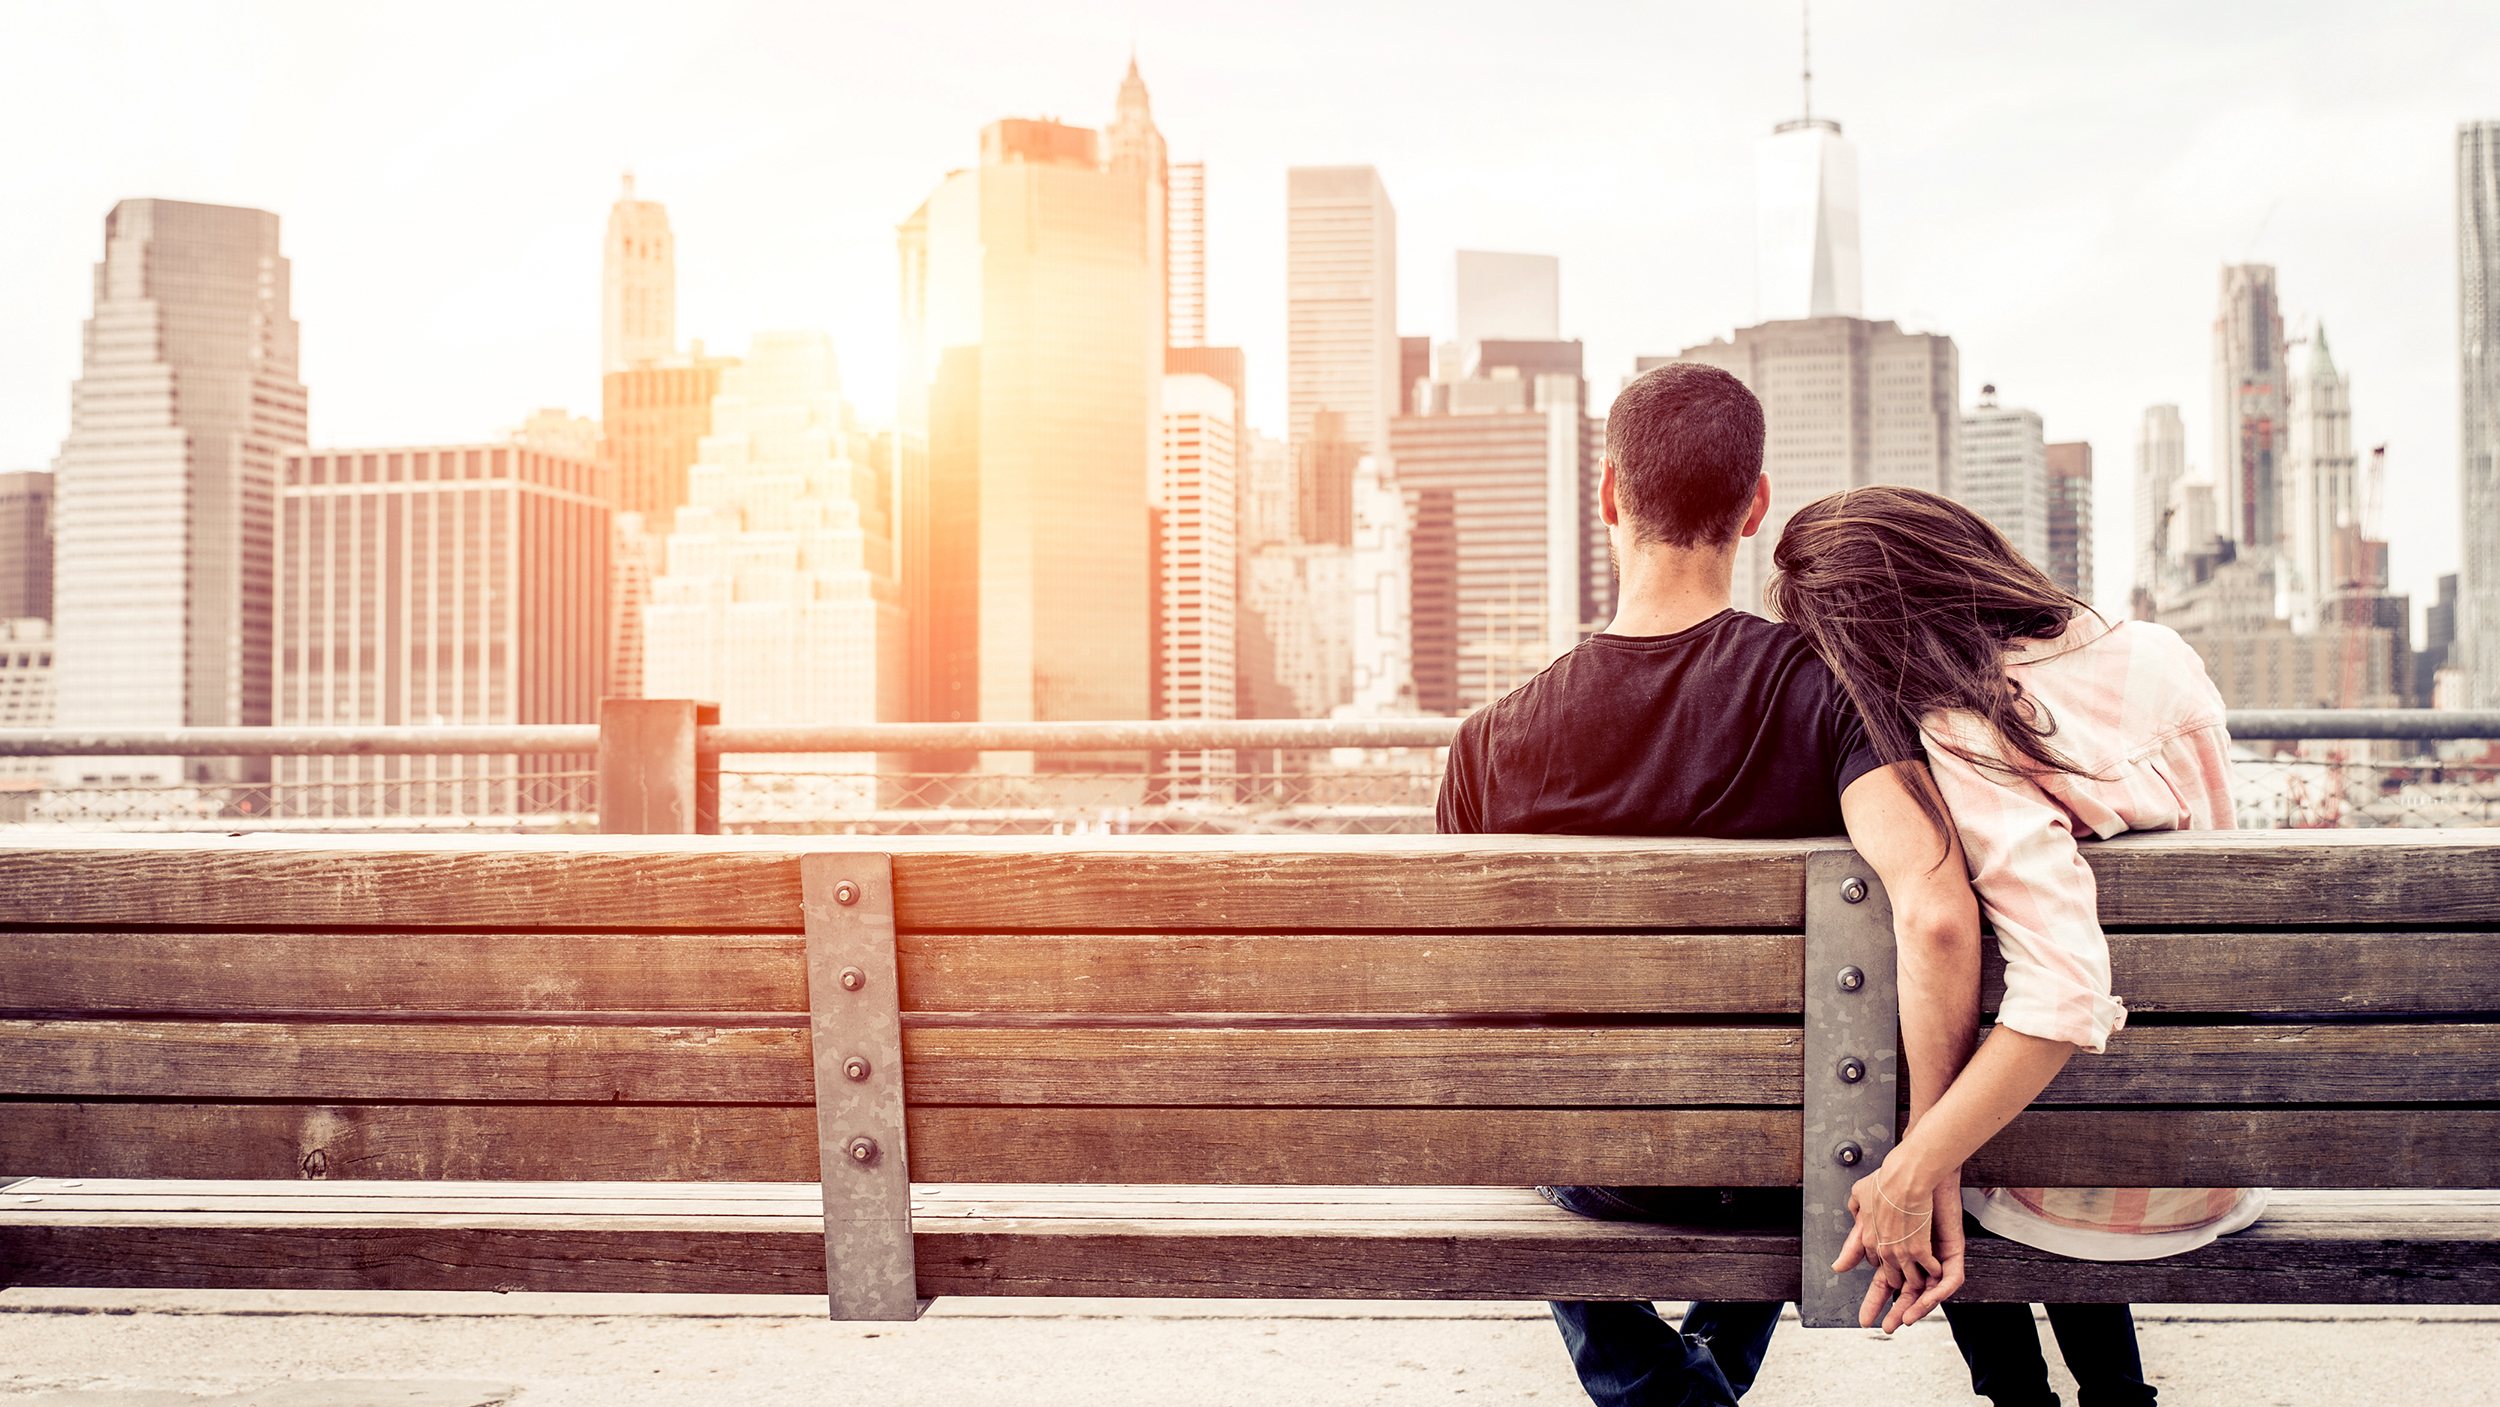 How to find love: 12 basic rules for lasting relationships